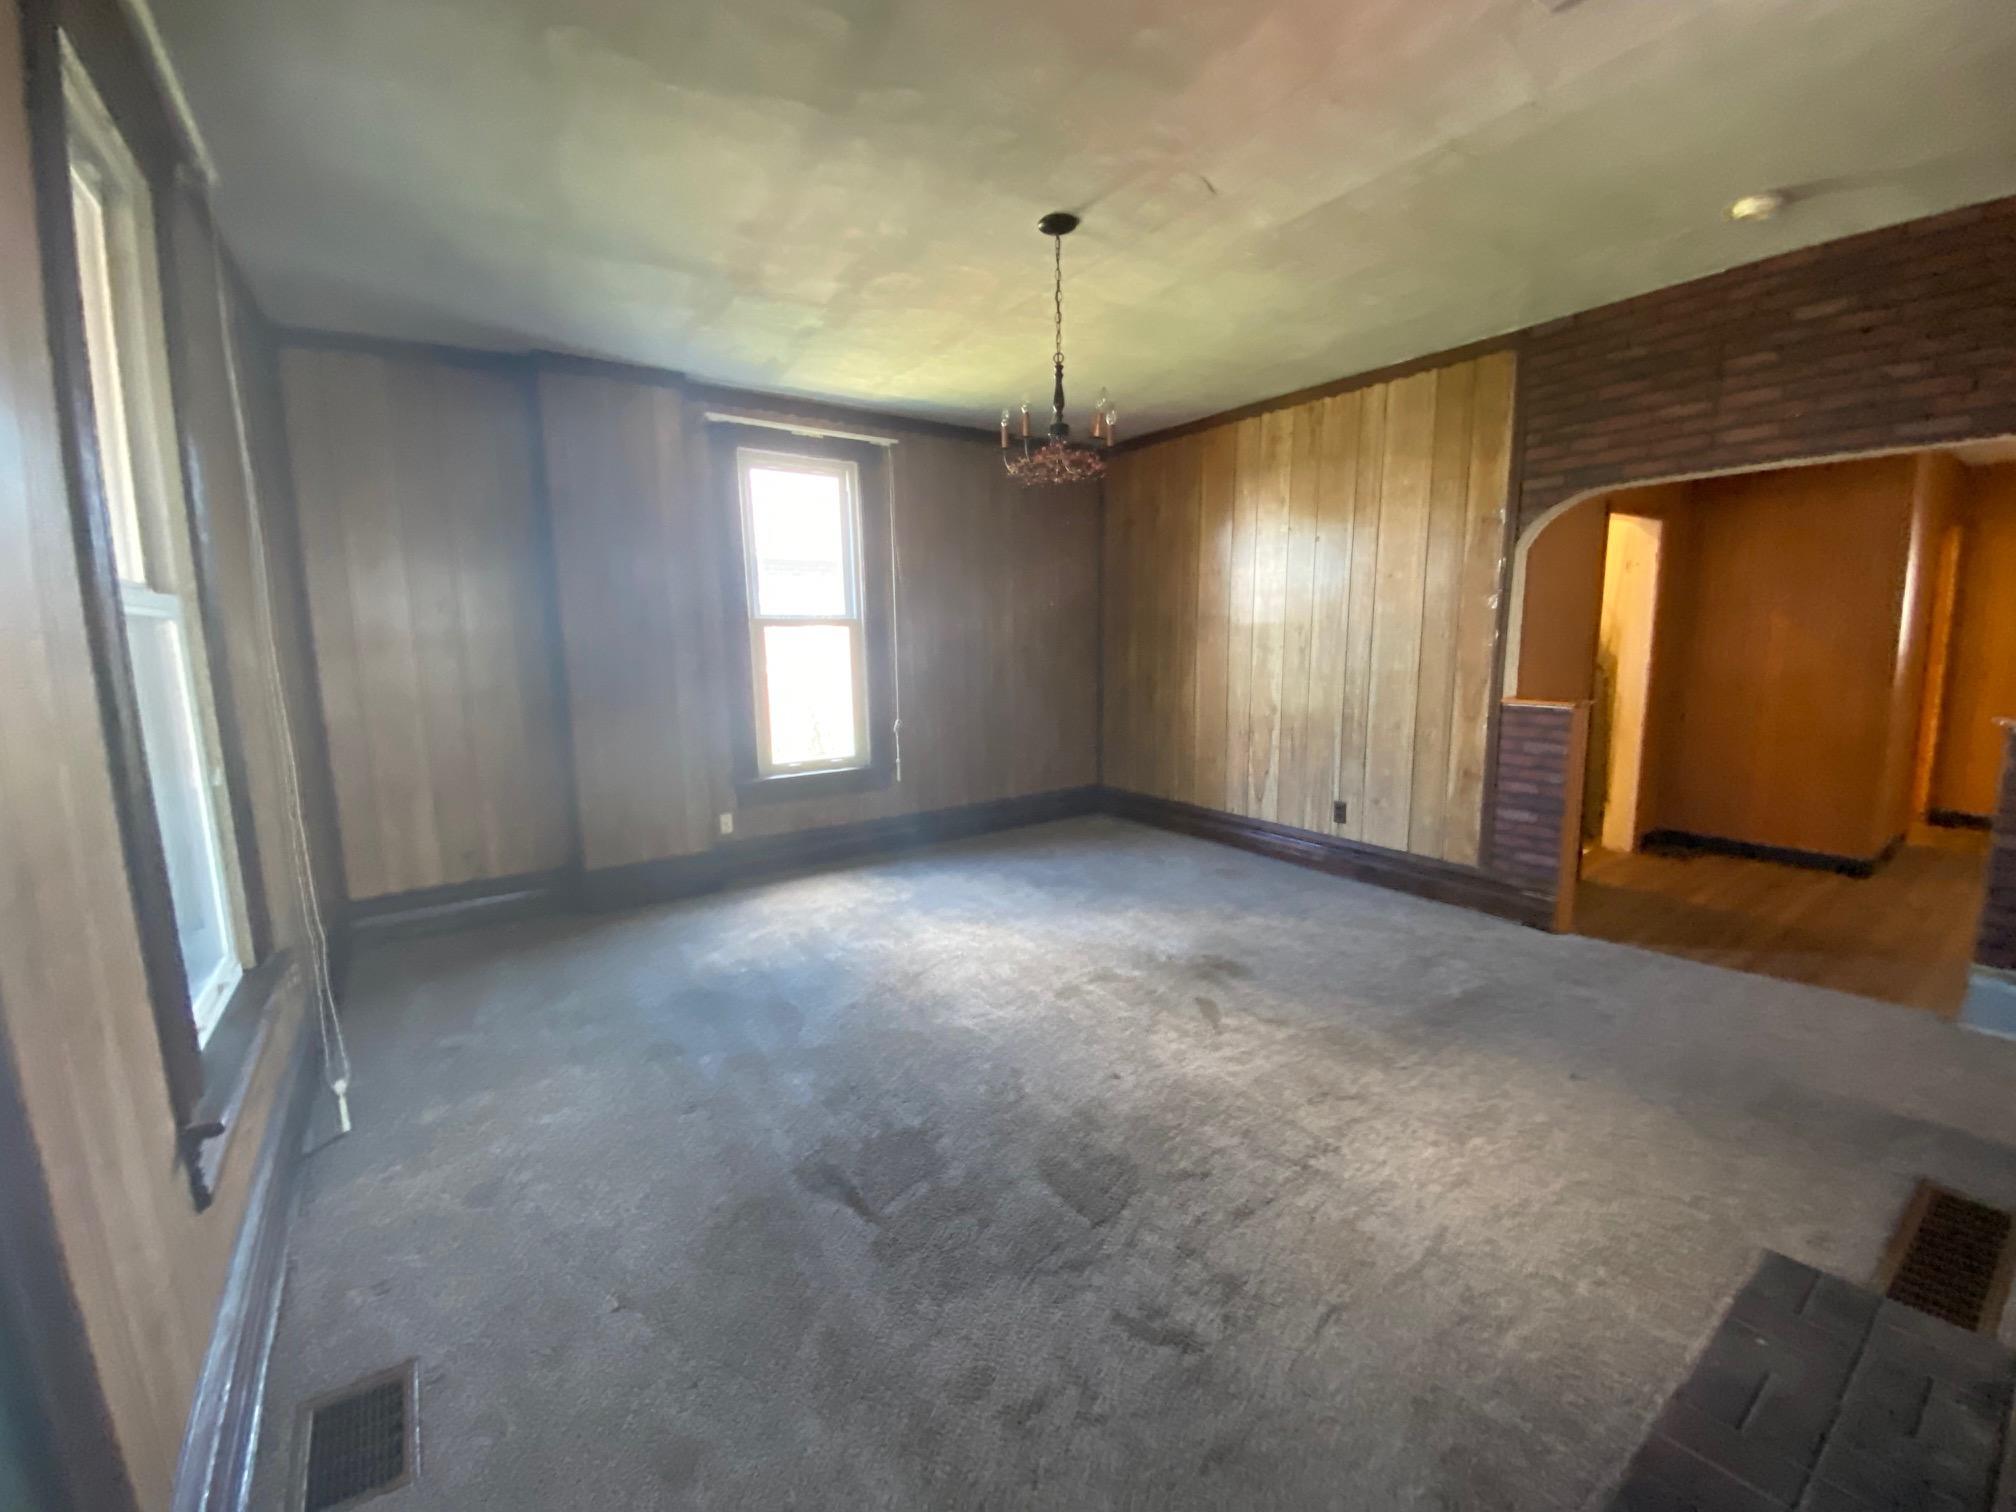 Photo 2 for 159 N Market St Mount Sterling, OH 43143